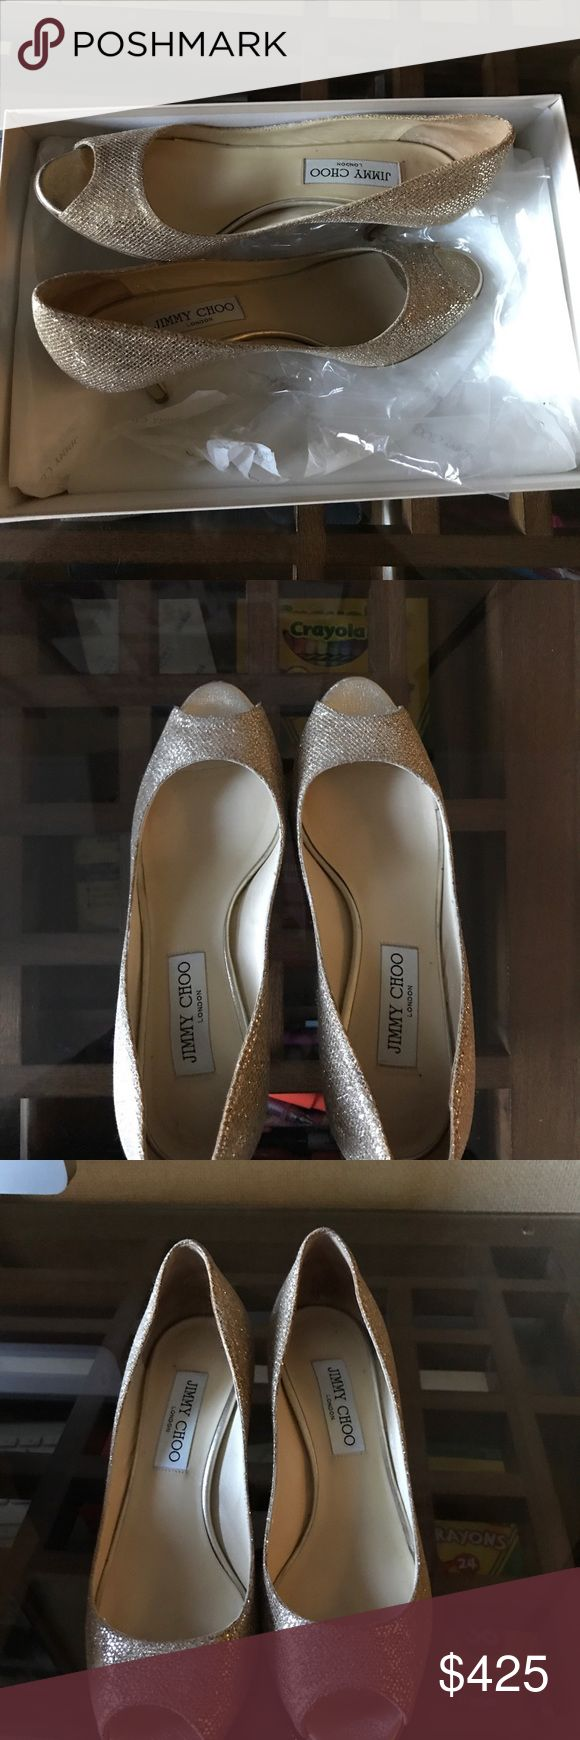 Jimmy Choo Gold Peep Toe Heel Only worn once! Fantastic condition. Authentic. Purchased from Neiman Marcus. So cute and spice up any outfit! Great for the holiday season. Heel is 2.5 inches tall! Very easy to walk in. Jimmy Choo Shoes Heels